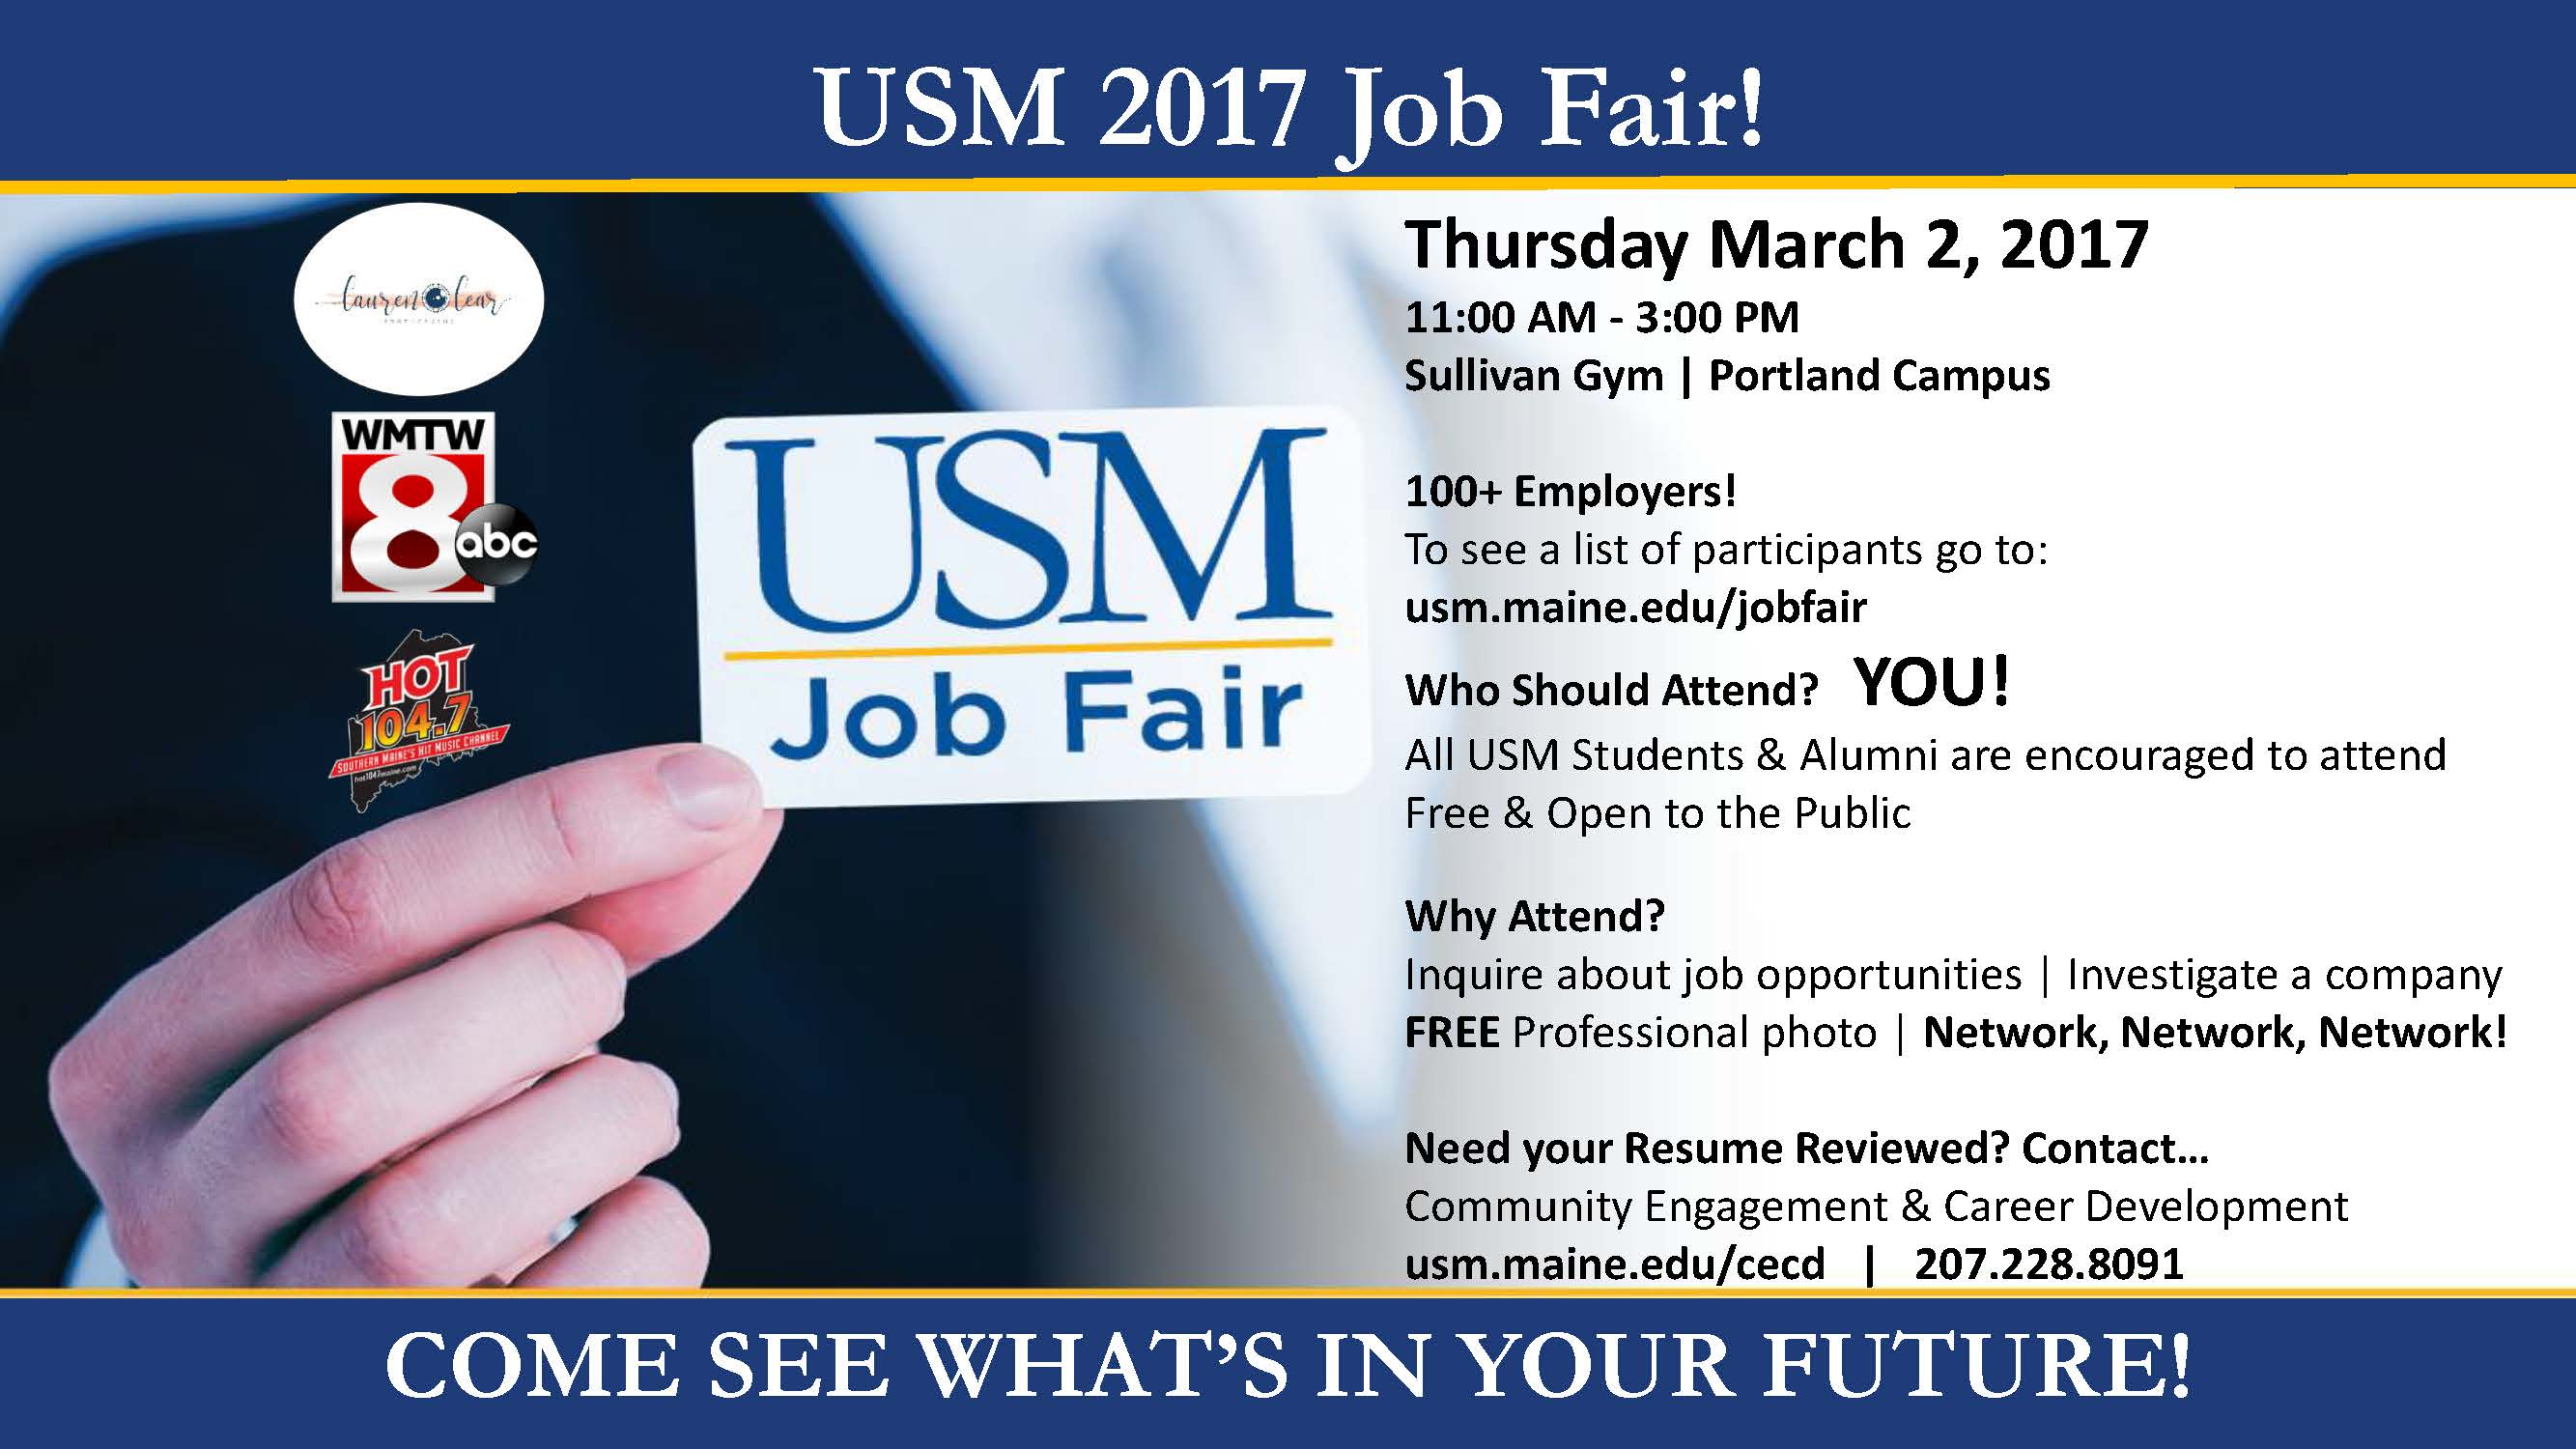 image_2017 USM Job Fair March 2